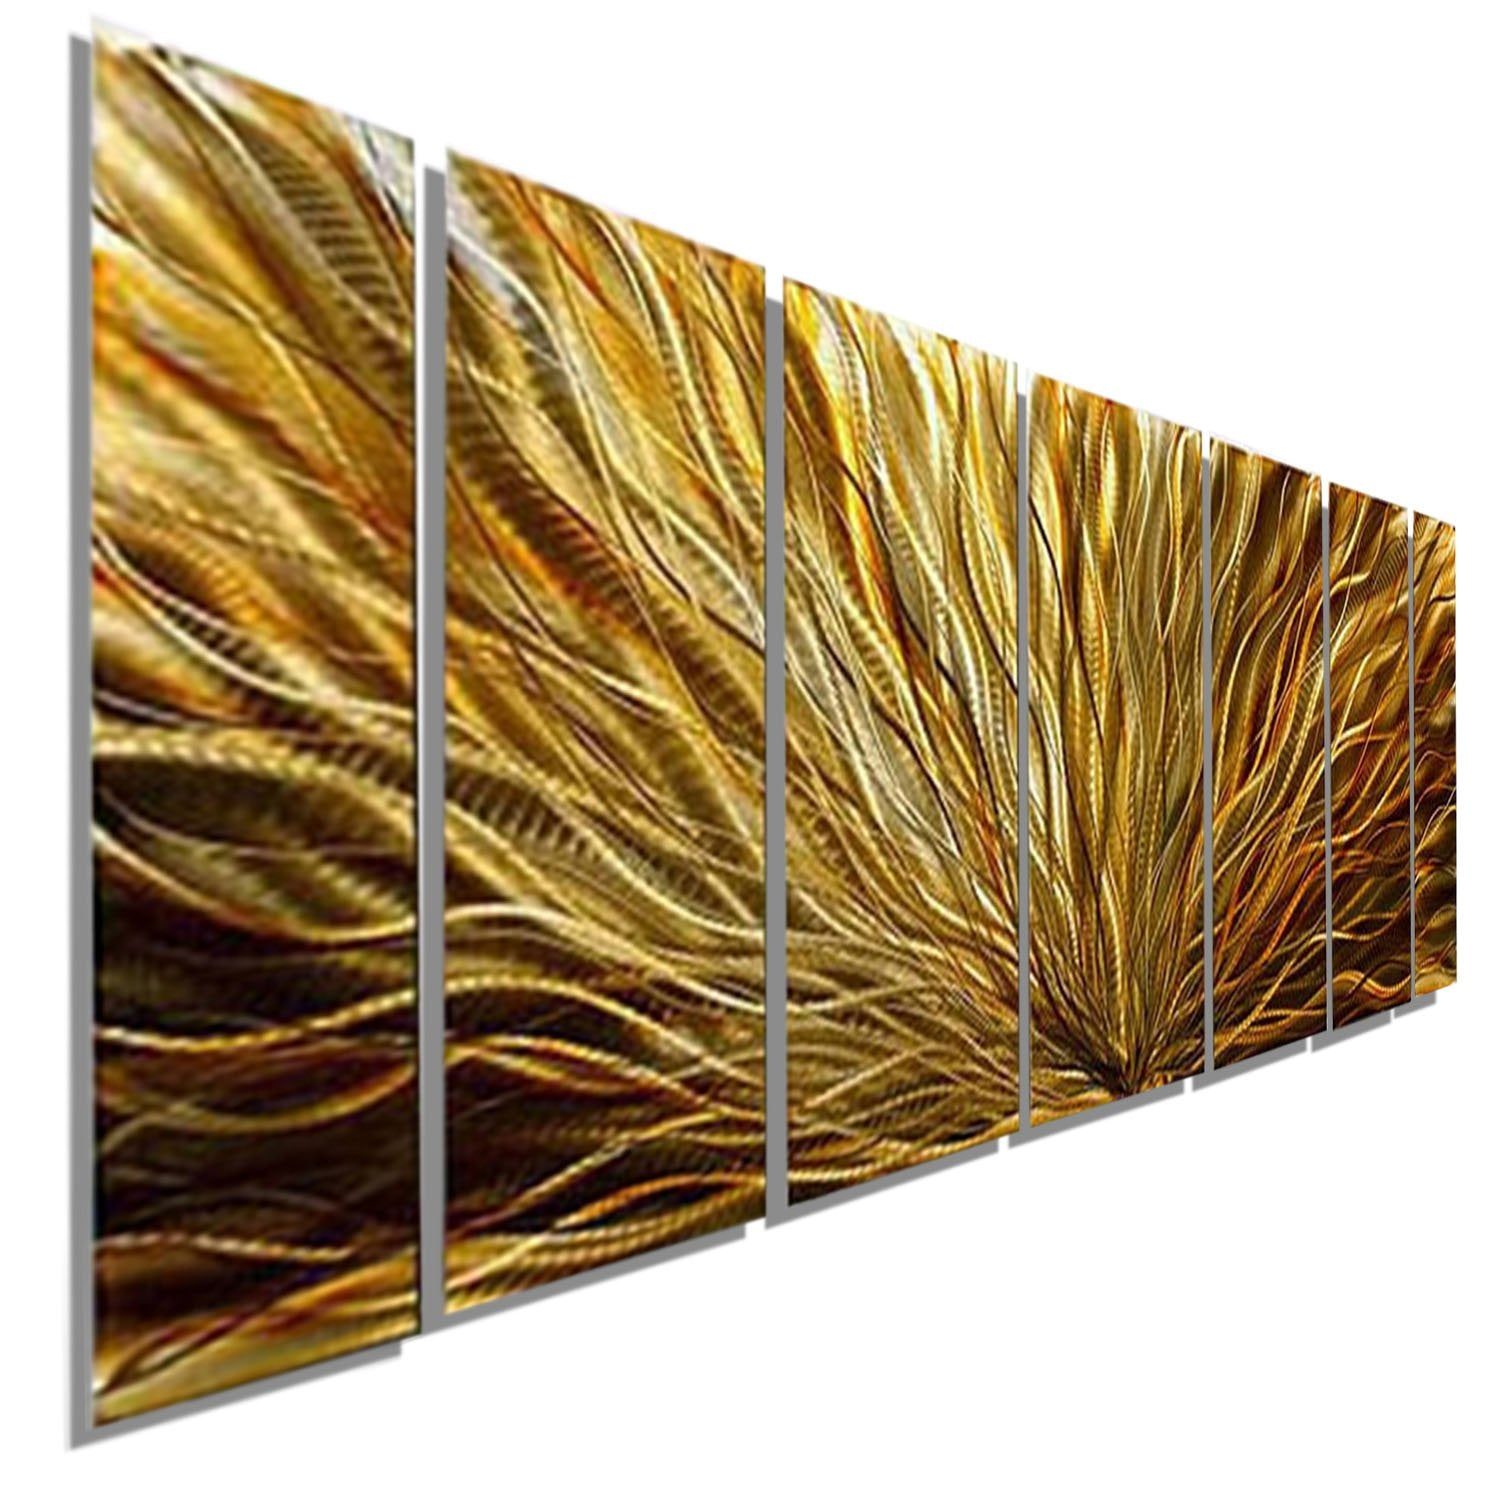 Gold & Amber Tones Modern Metal Wall Painting by Jon Allen - Amber ...